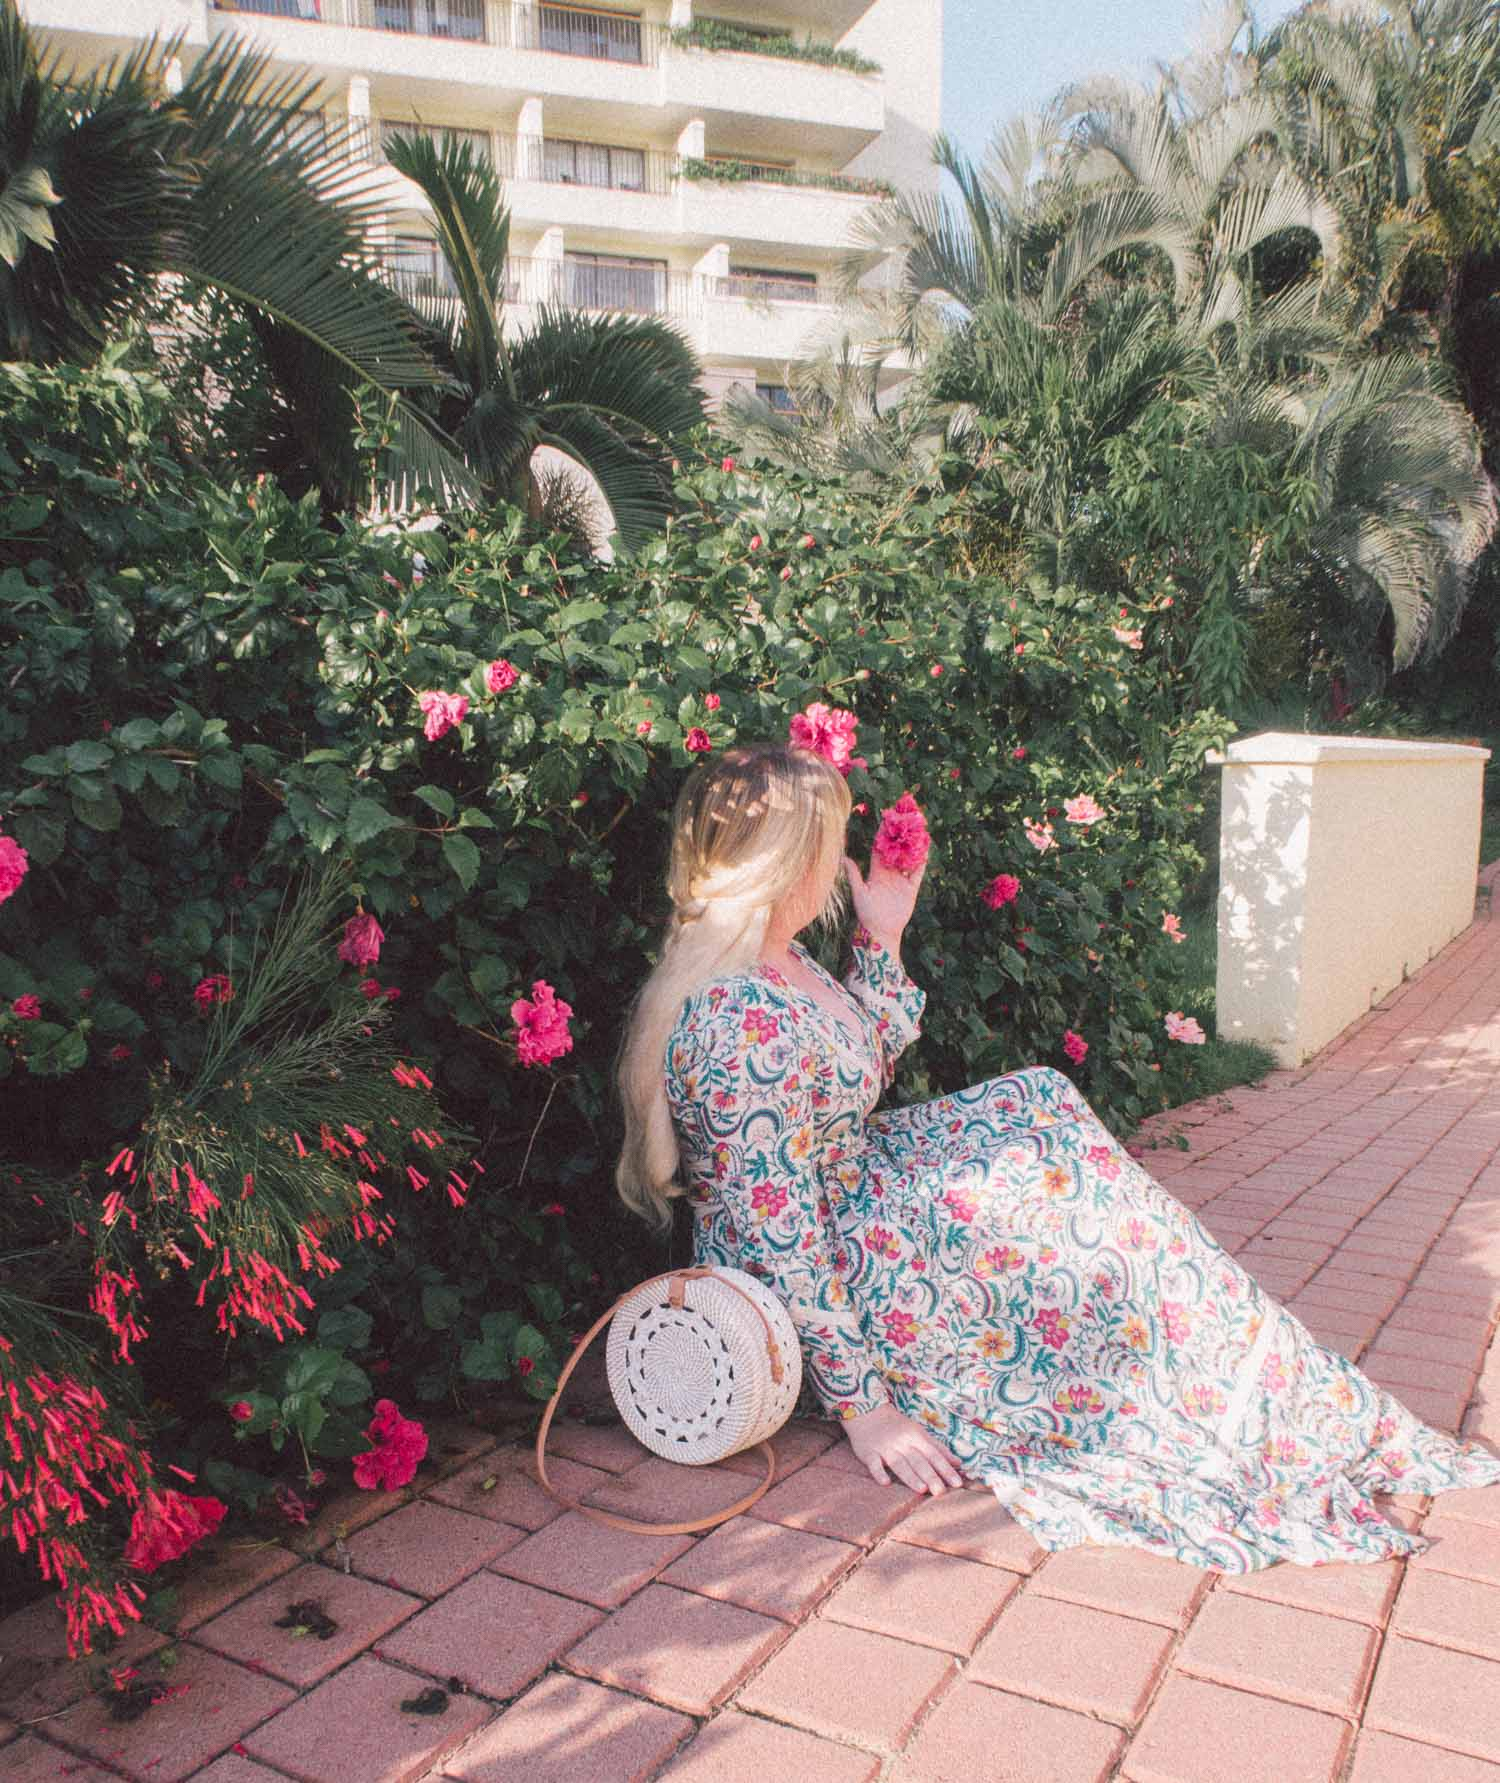 Elizabeth Hugen of Lizzie in Lace shares the Marriott Puerto Vallarta courtyard!